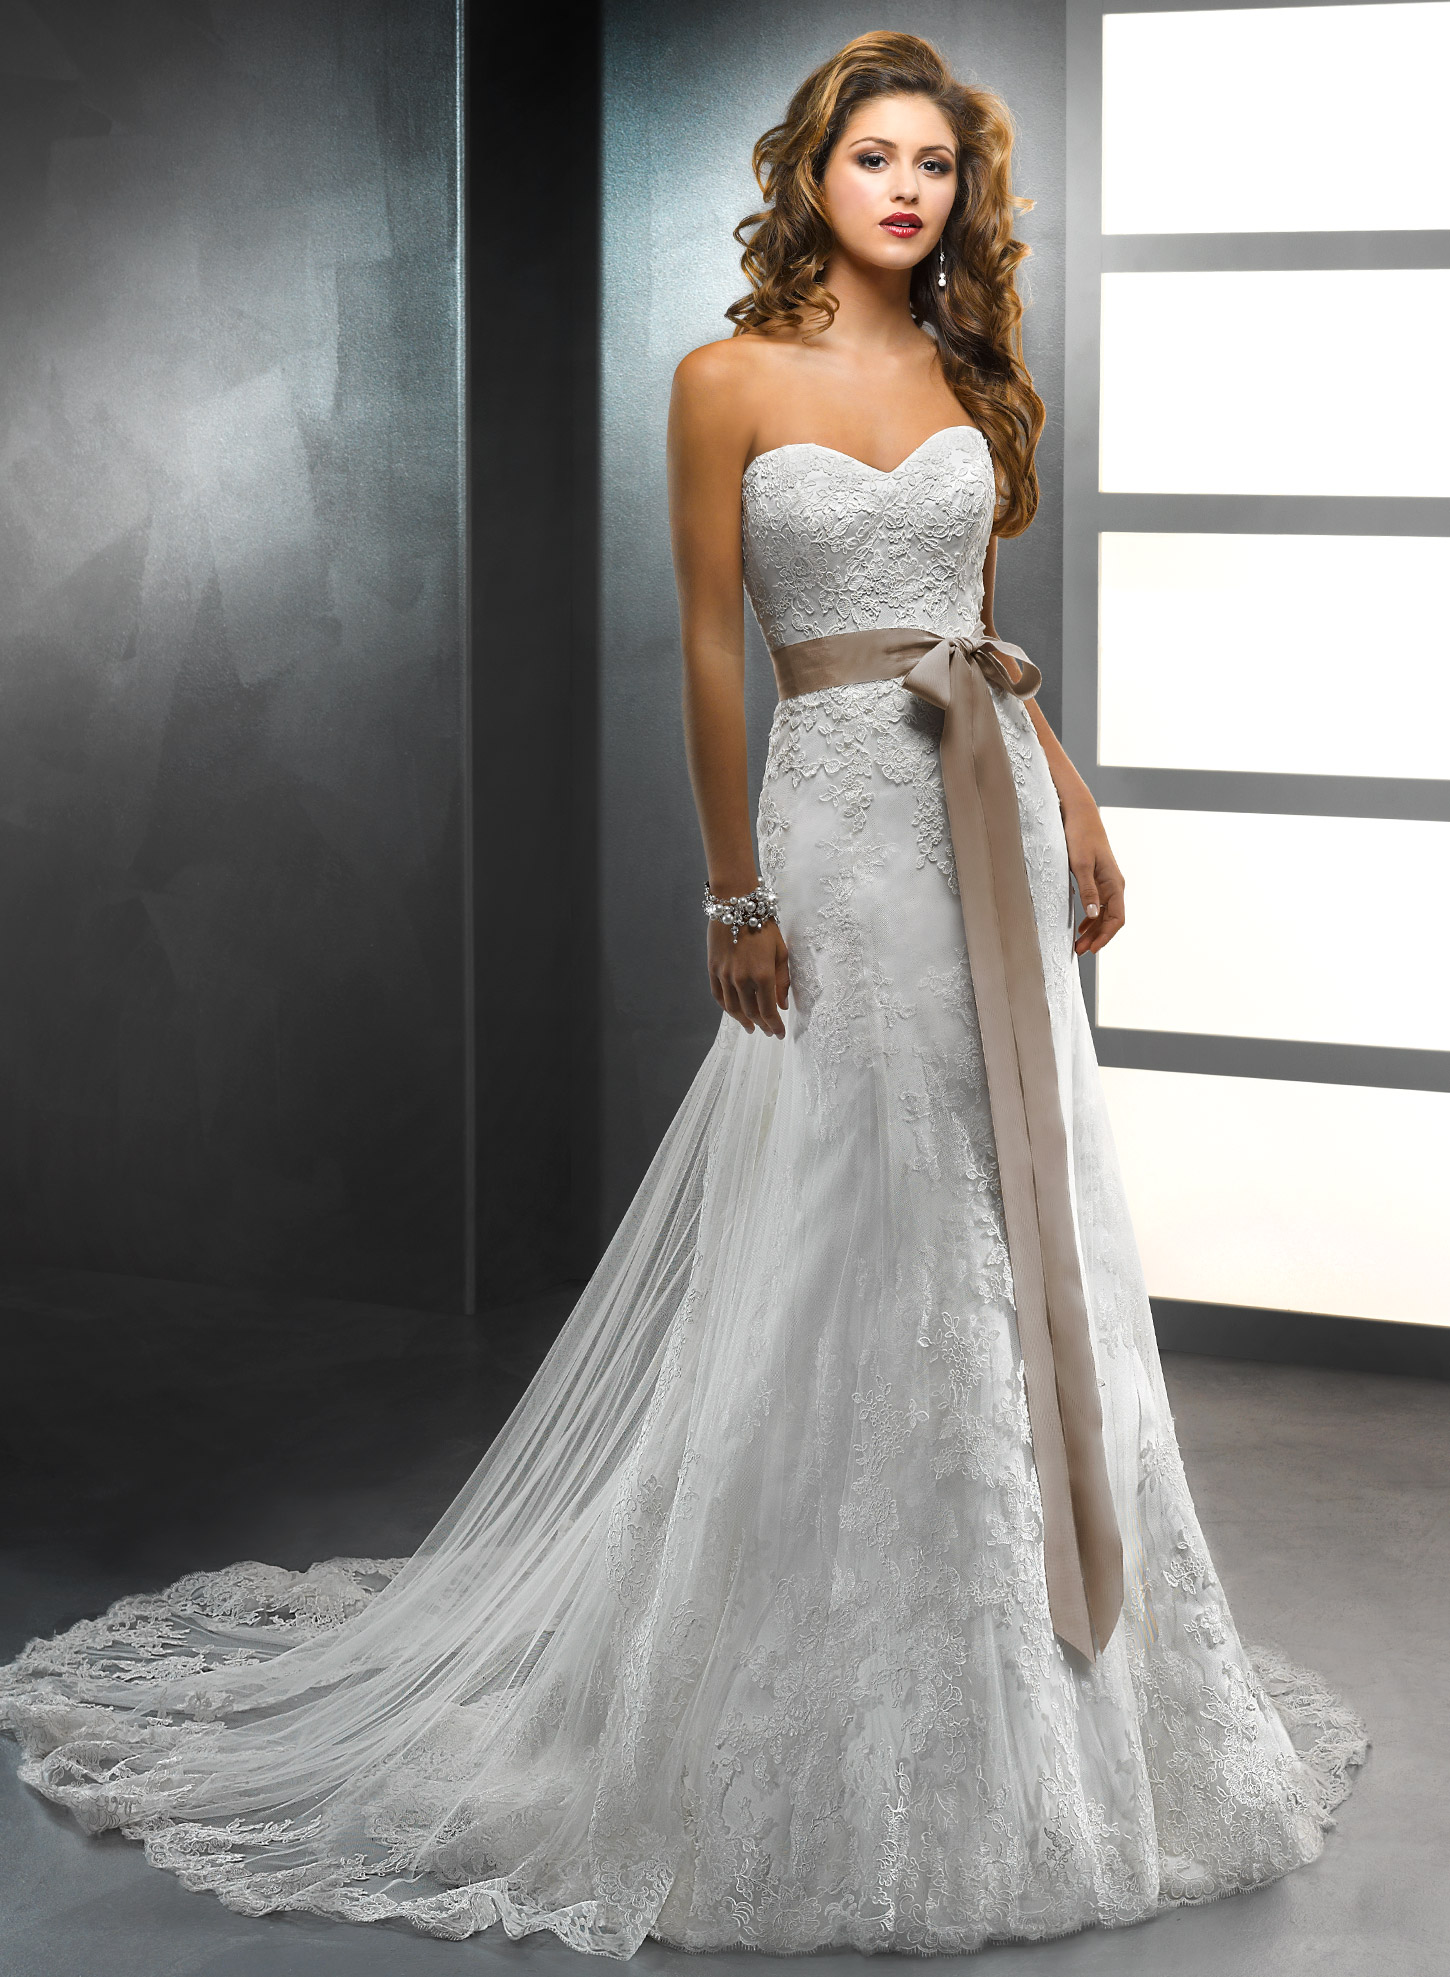 Contemporary mermaid wedding dresses under 500 composition for Wedding dresses reading pa